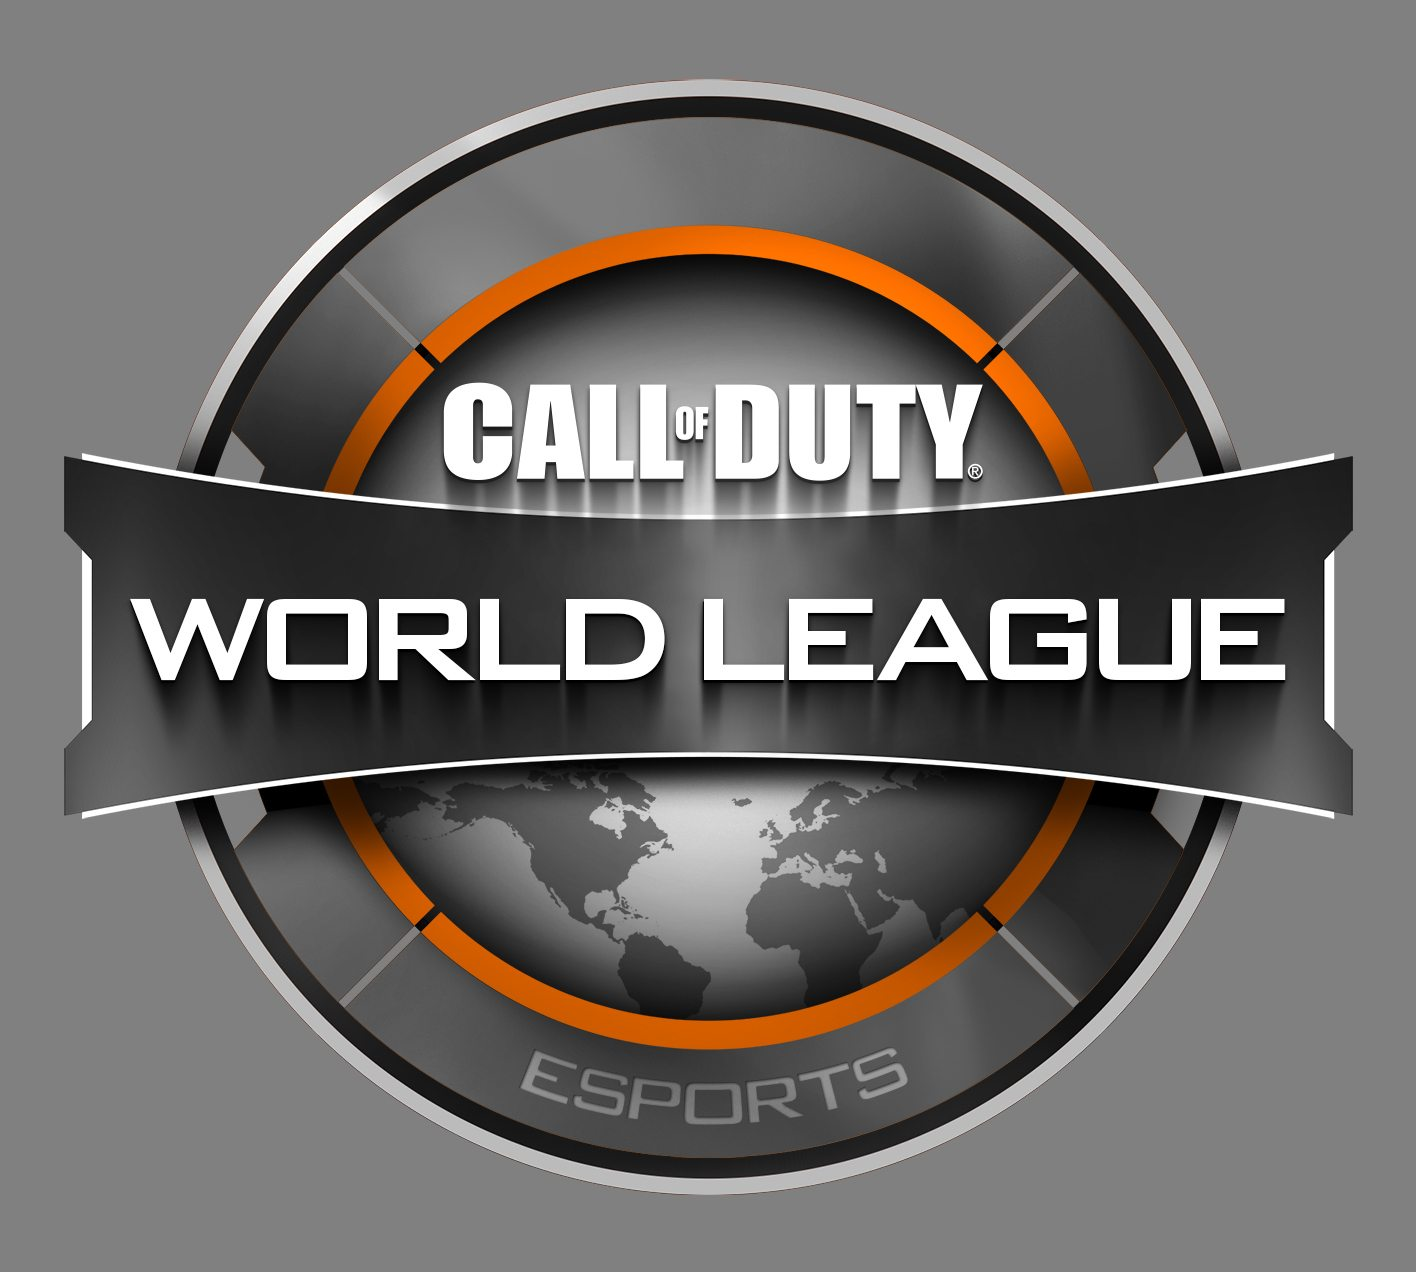 Call of Duty World League Championship Final Groups Confirmed, Presented by PlayStation 4